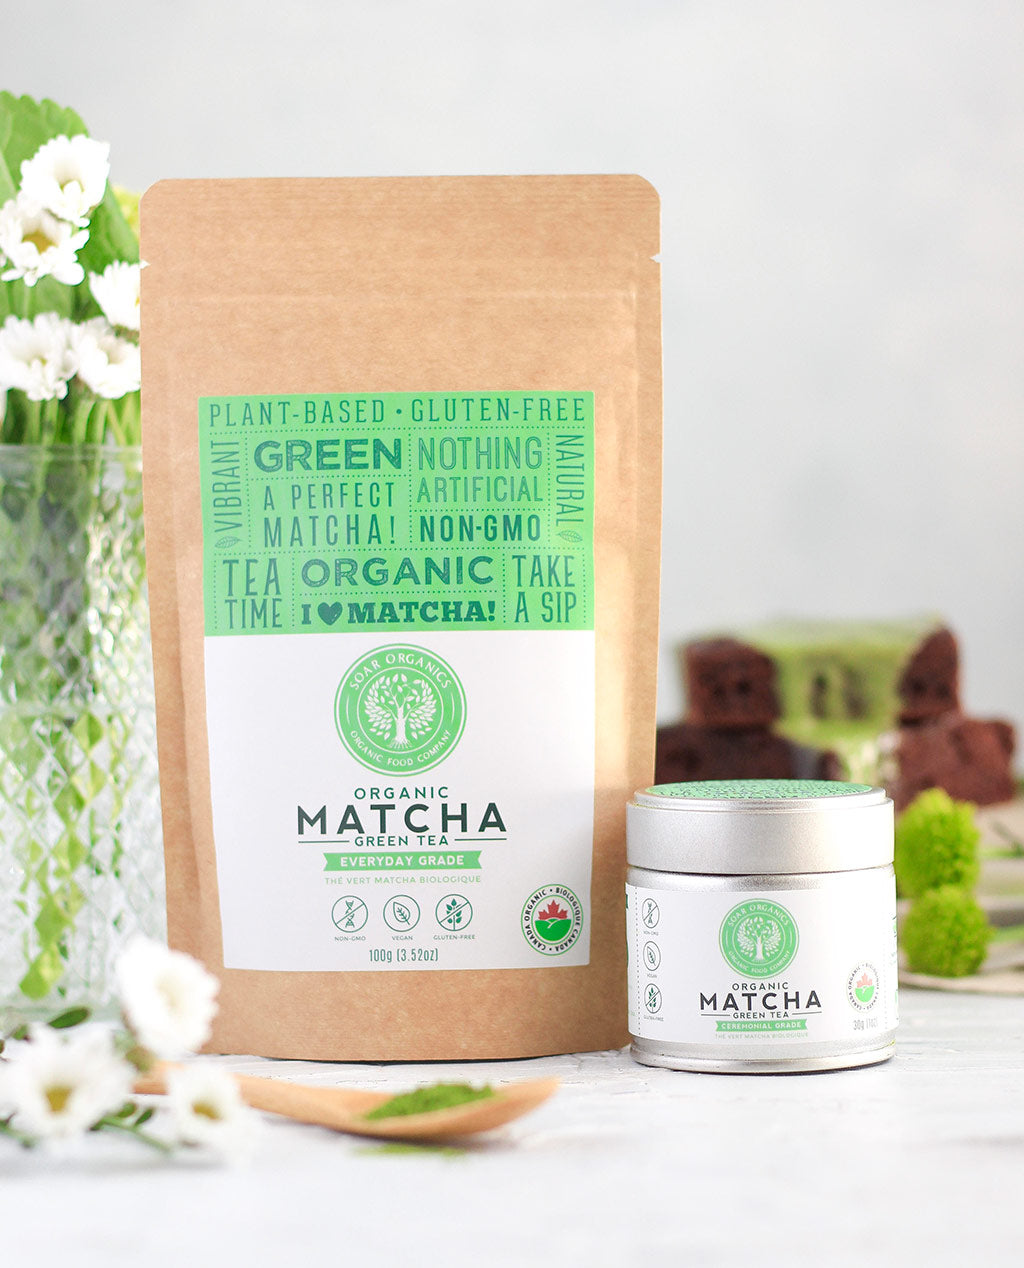 Soar Organics matcha brownie glaze recipe